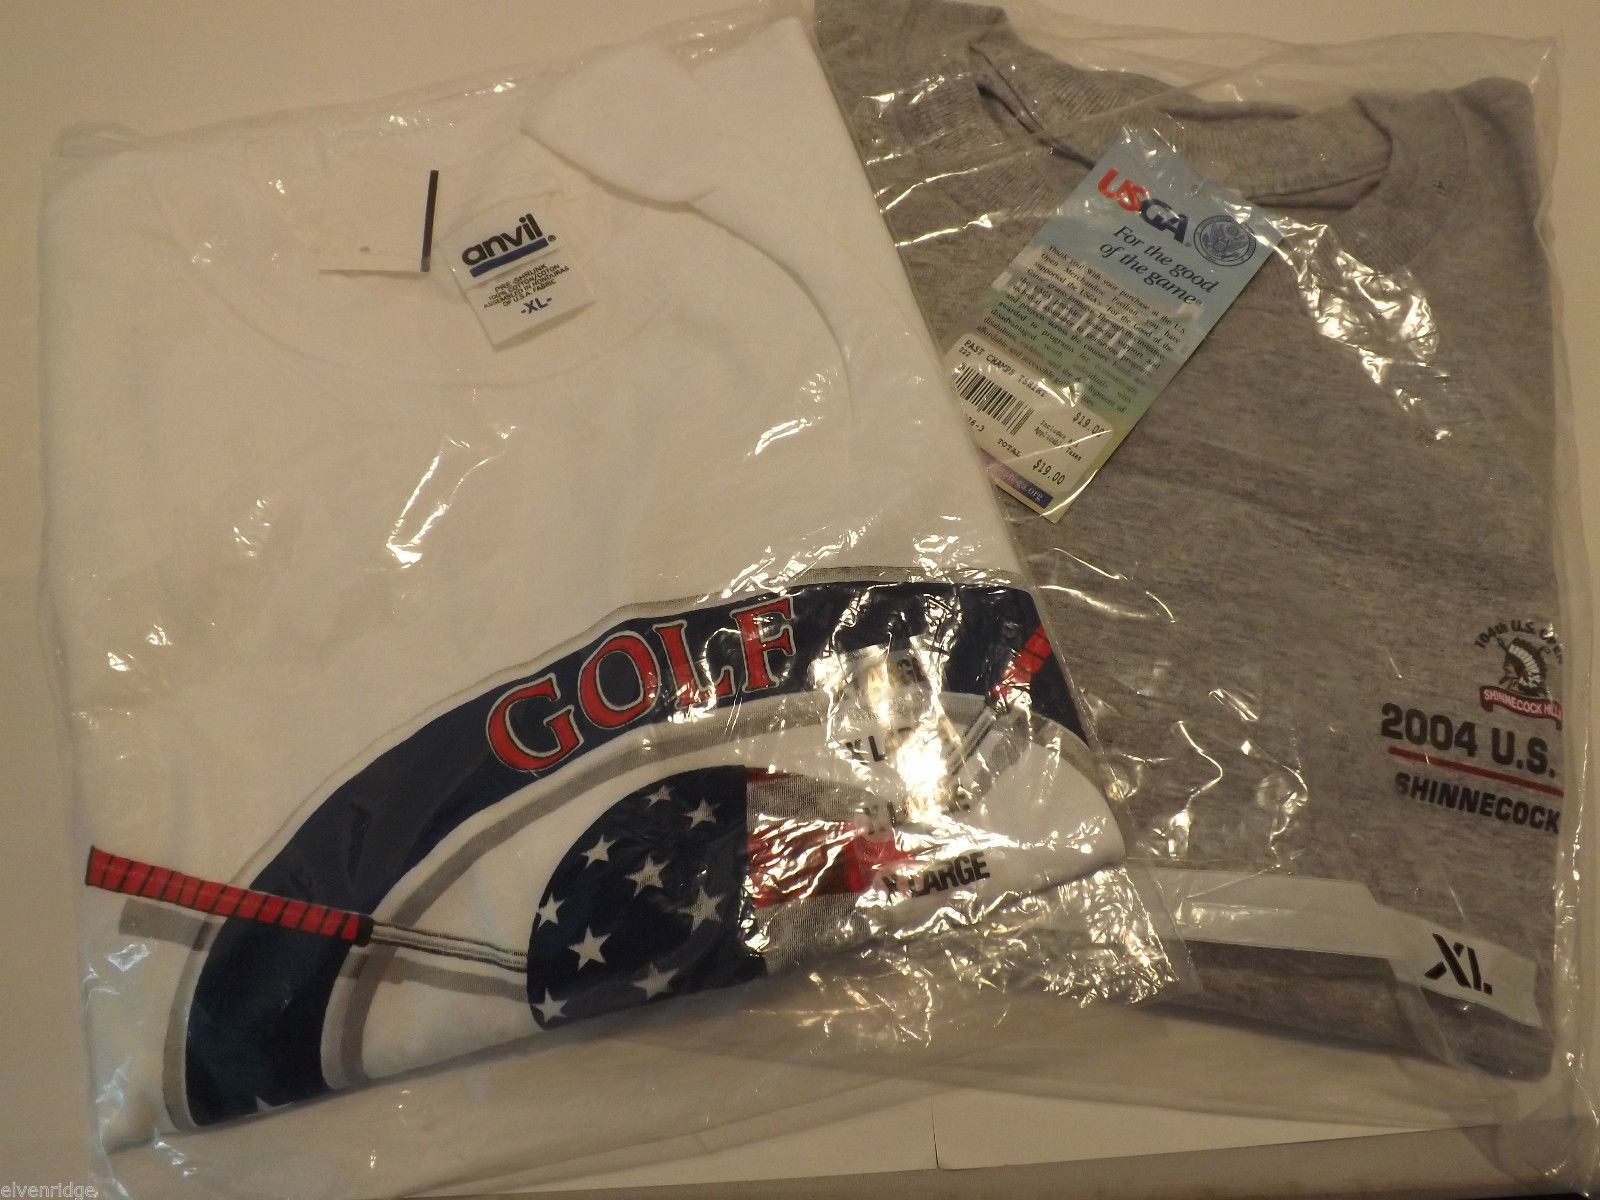 Lot of 2 Golf T-Shirts Still in Packaging Size XL